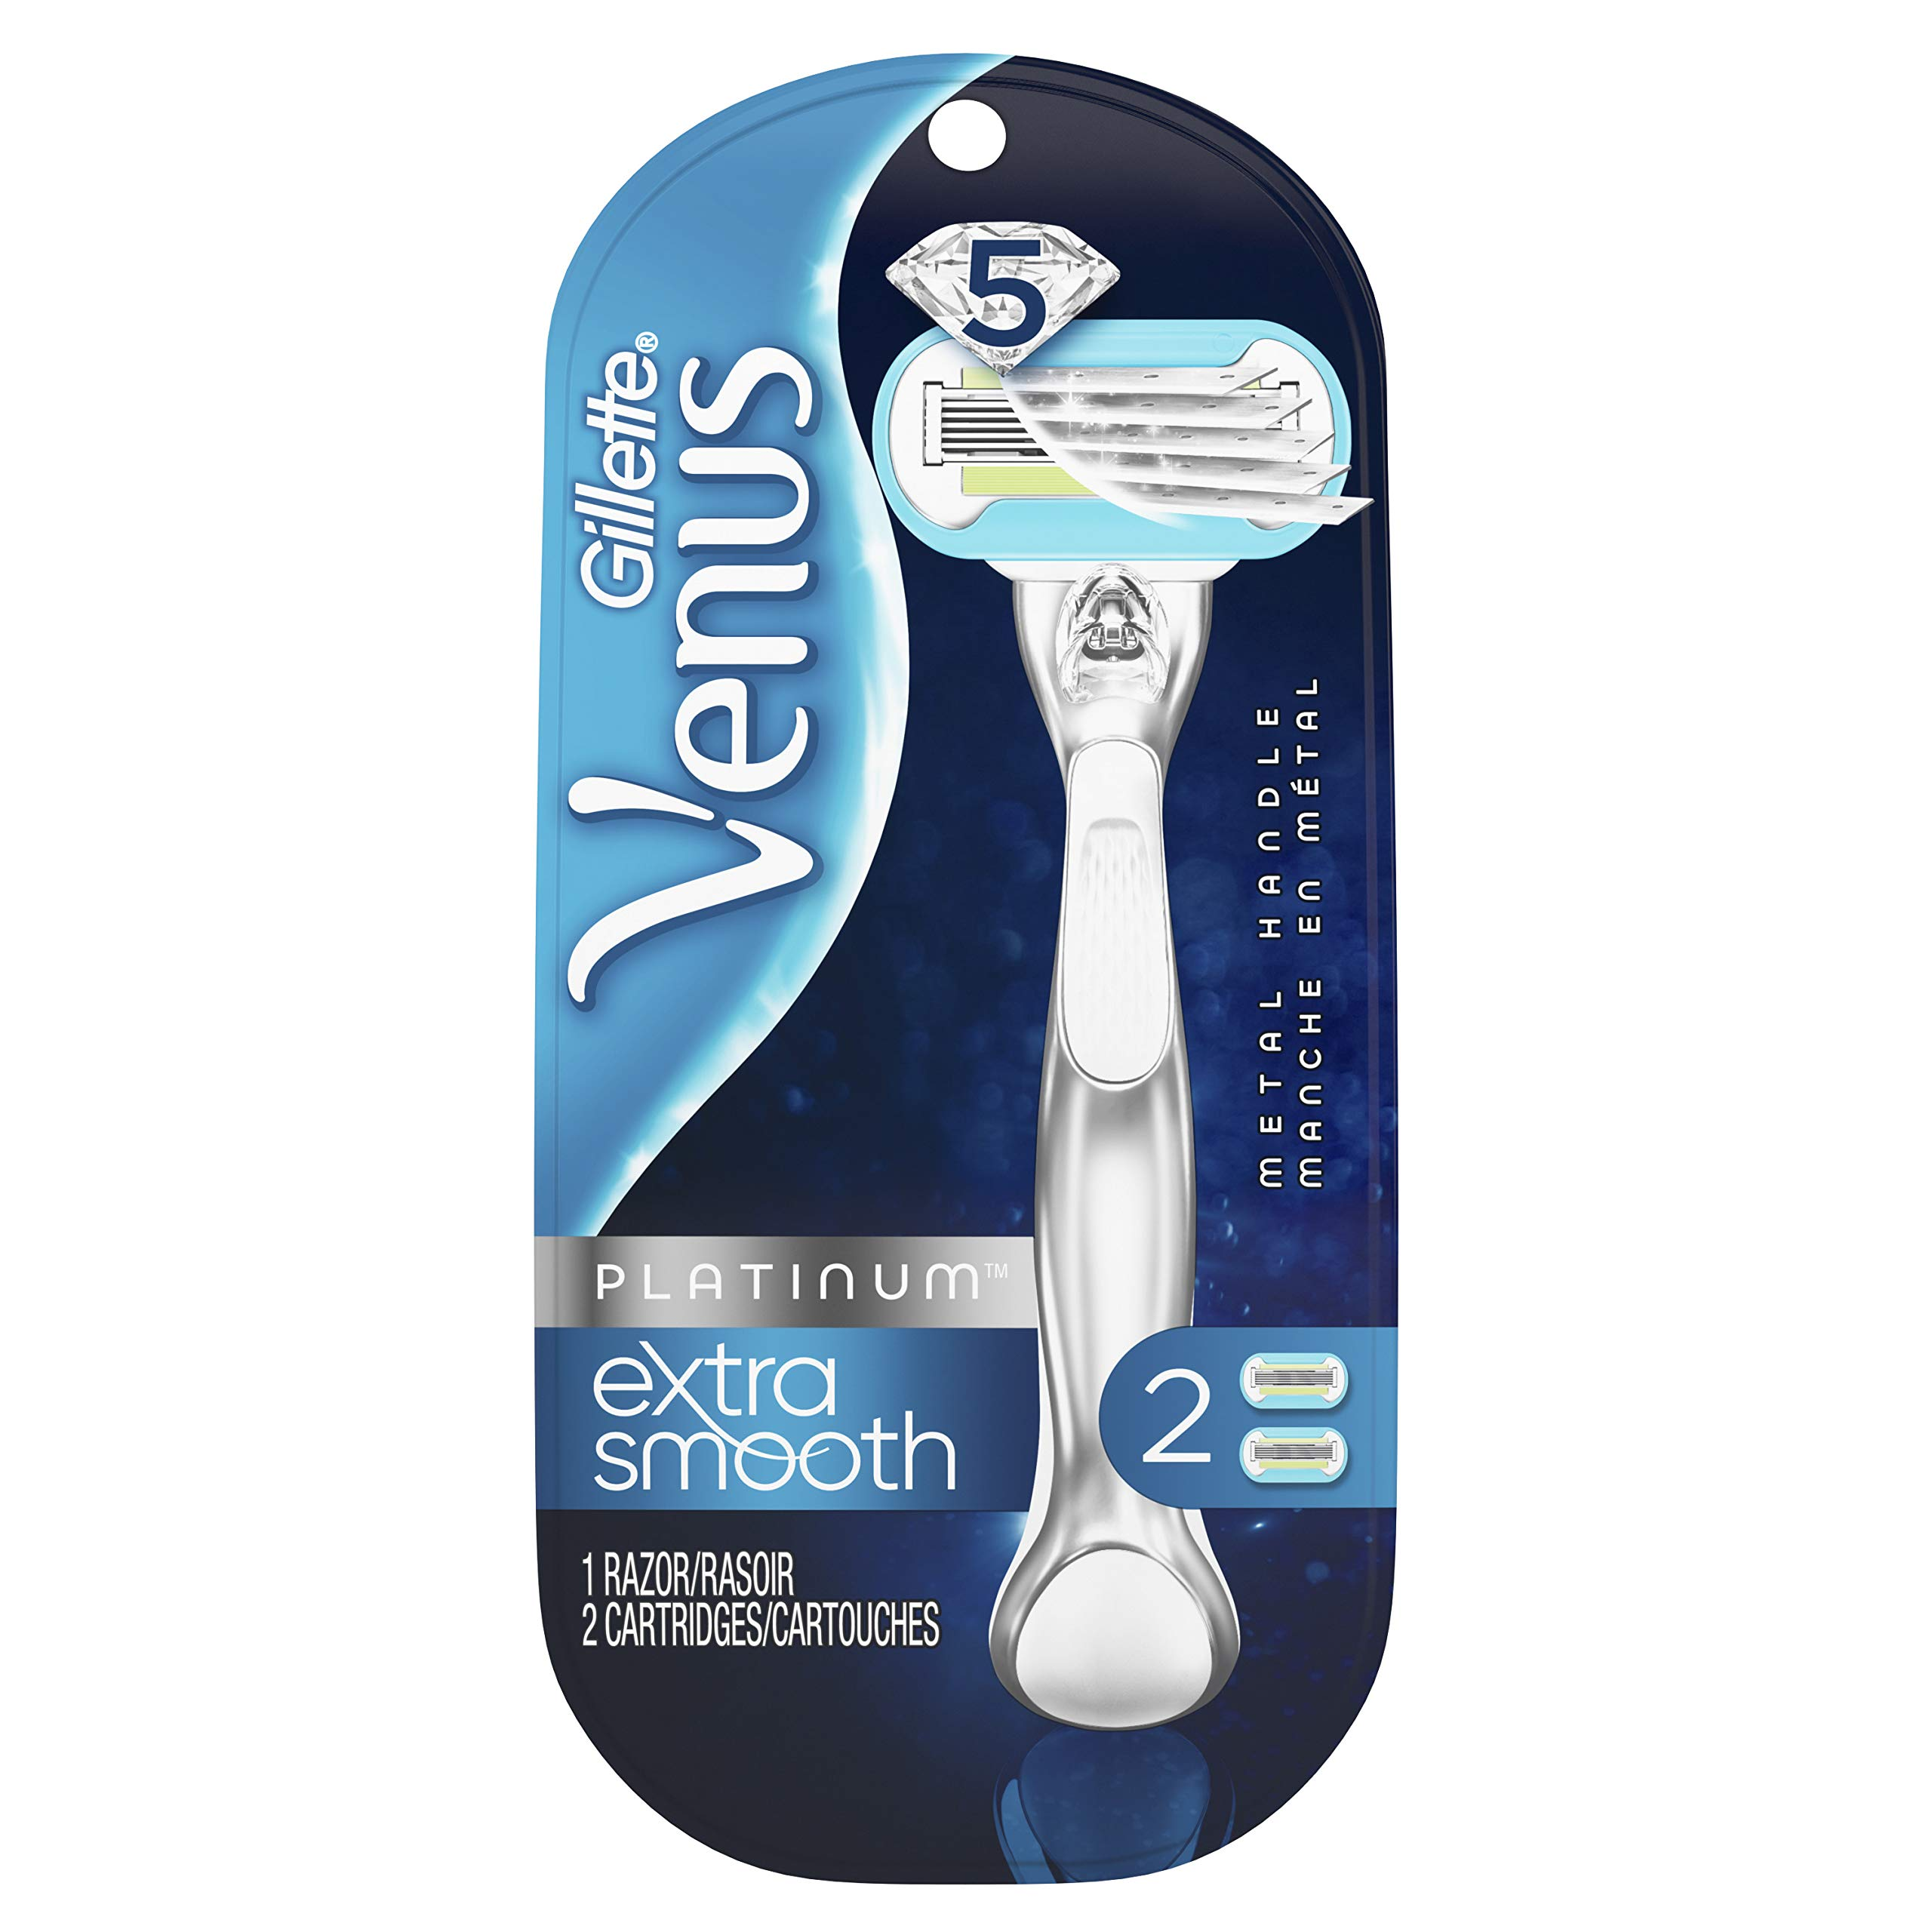 Gillette Venus Platinum Extra Smooth Metal Handle Women's Razor - 1 Handle + 2 Refills by Gillette Venus (Image #1)